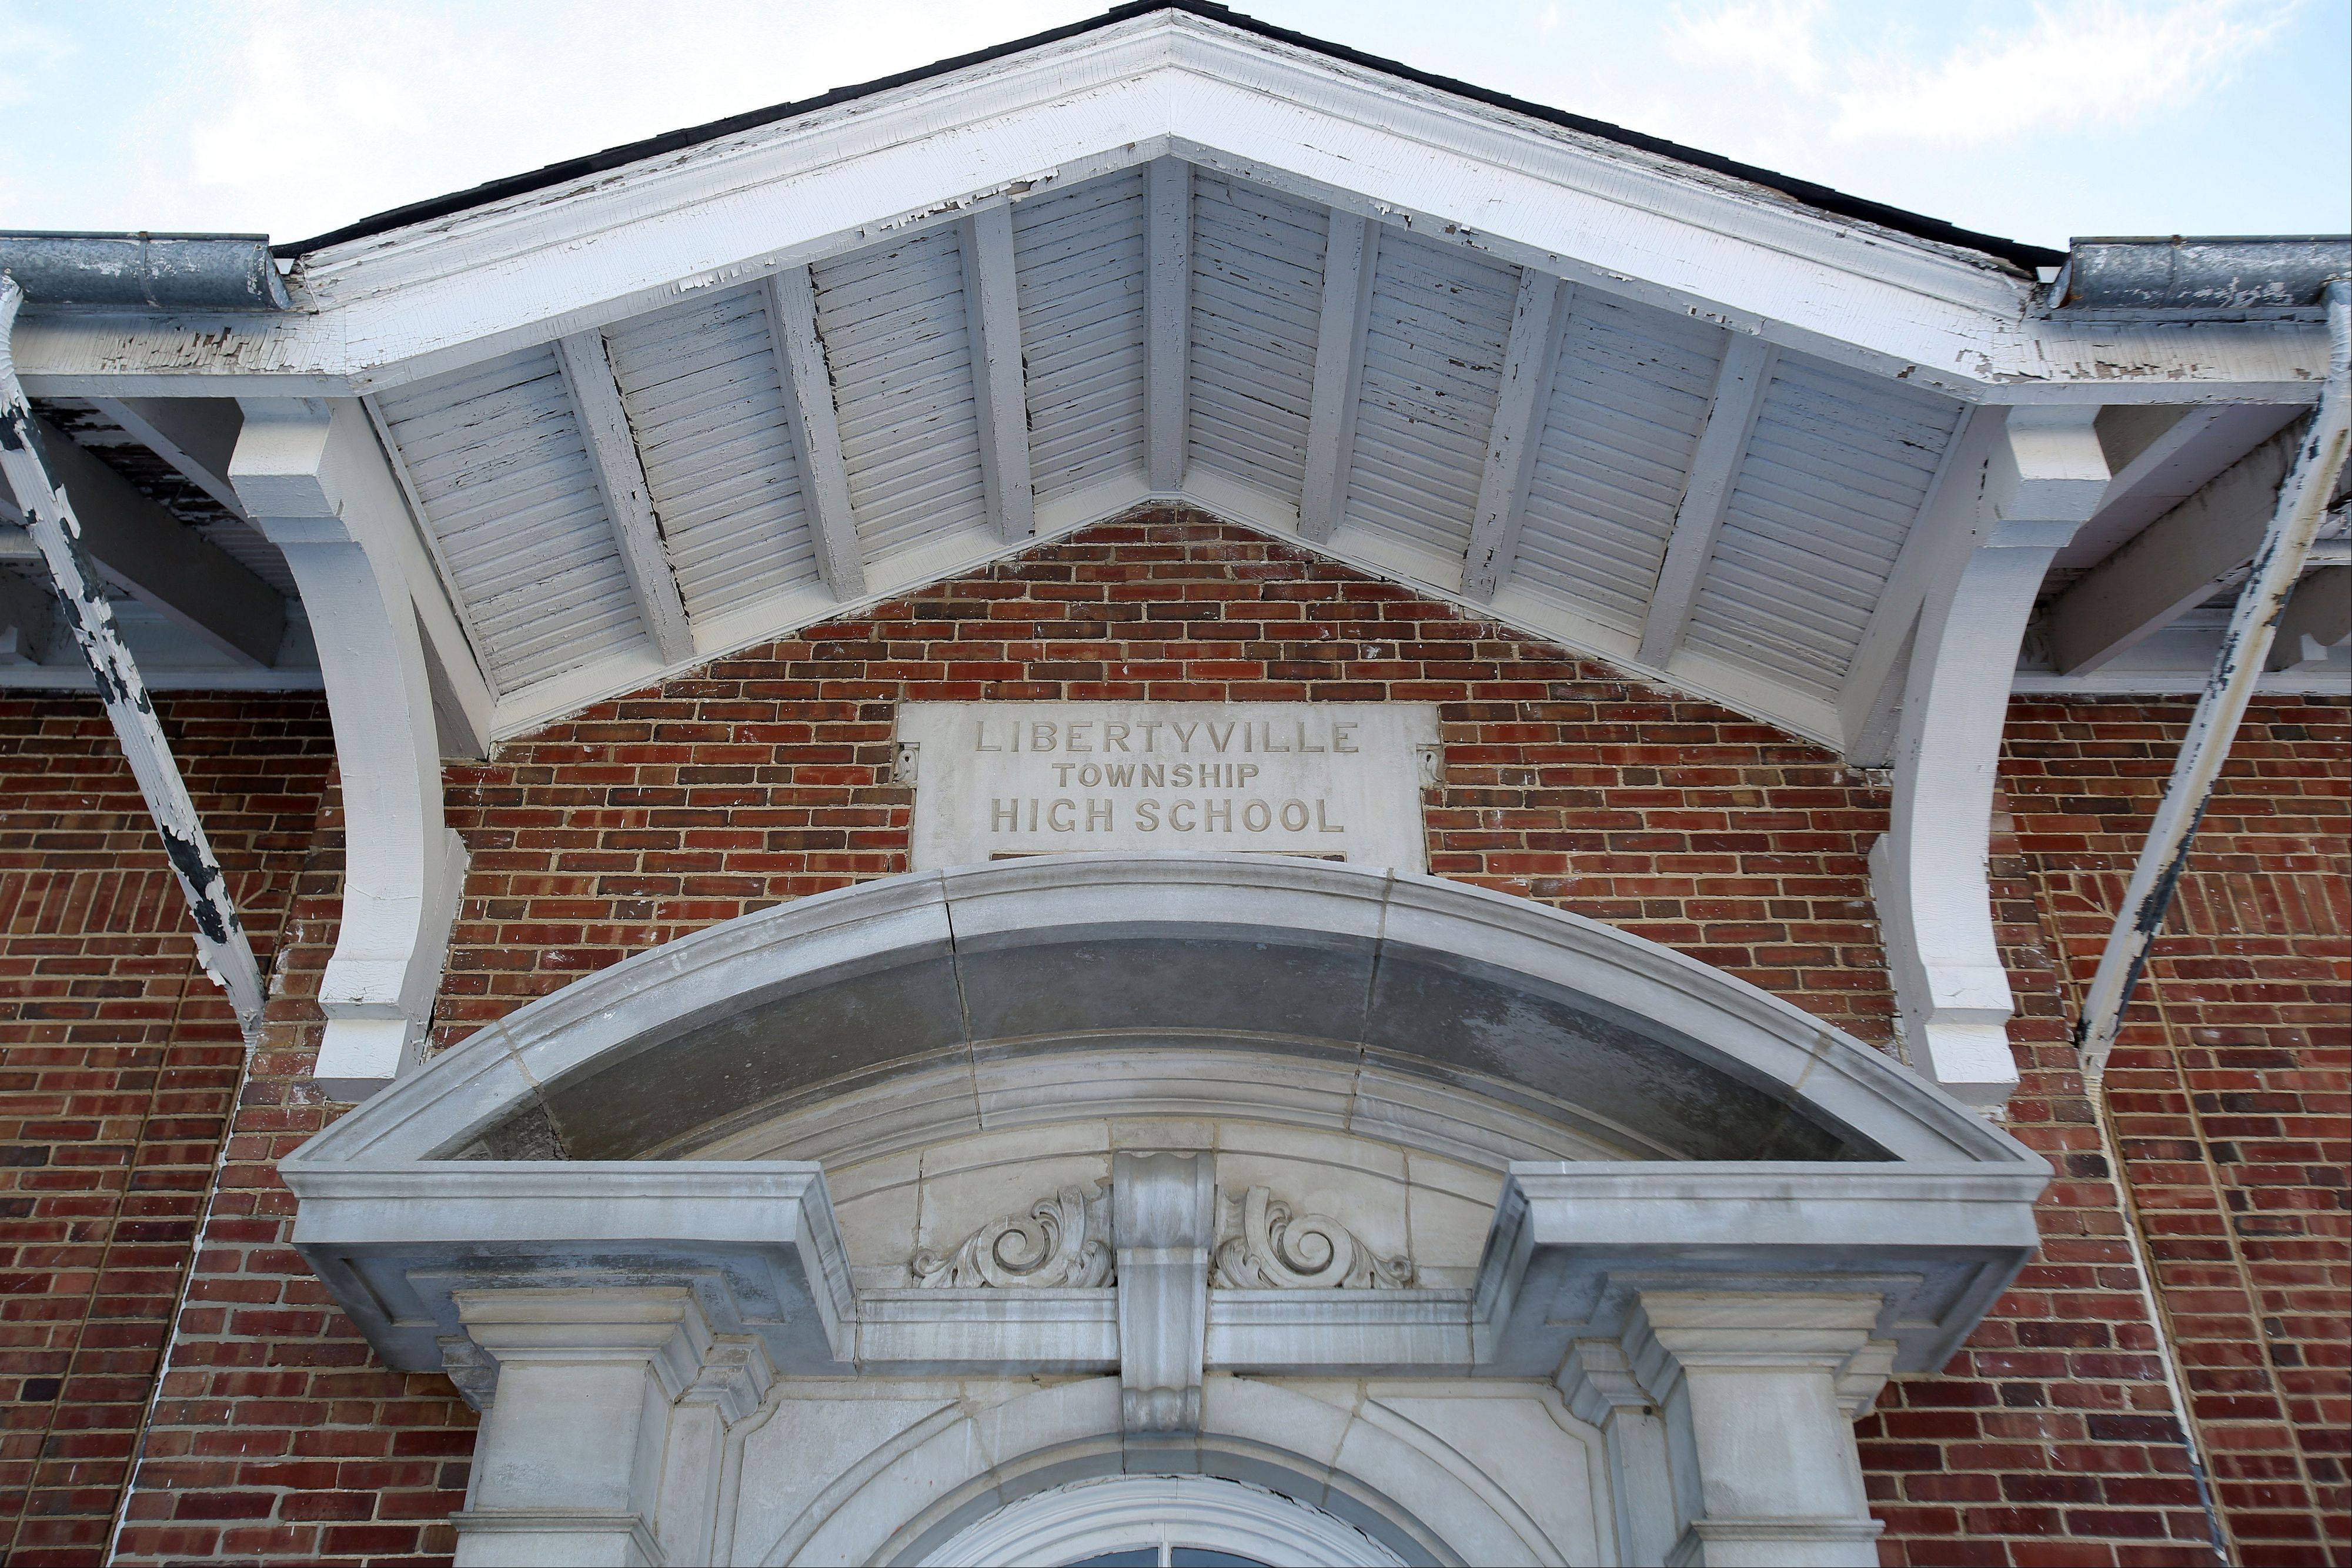 The Brainerd building was built in 1916 as Libertyville Township High School. Voters will be asked in March whether they would approve a tax hike to pay for up to $11.5 million in bonds to be issued by the village to convert it into a community center.